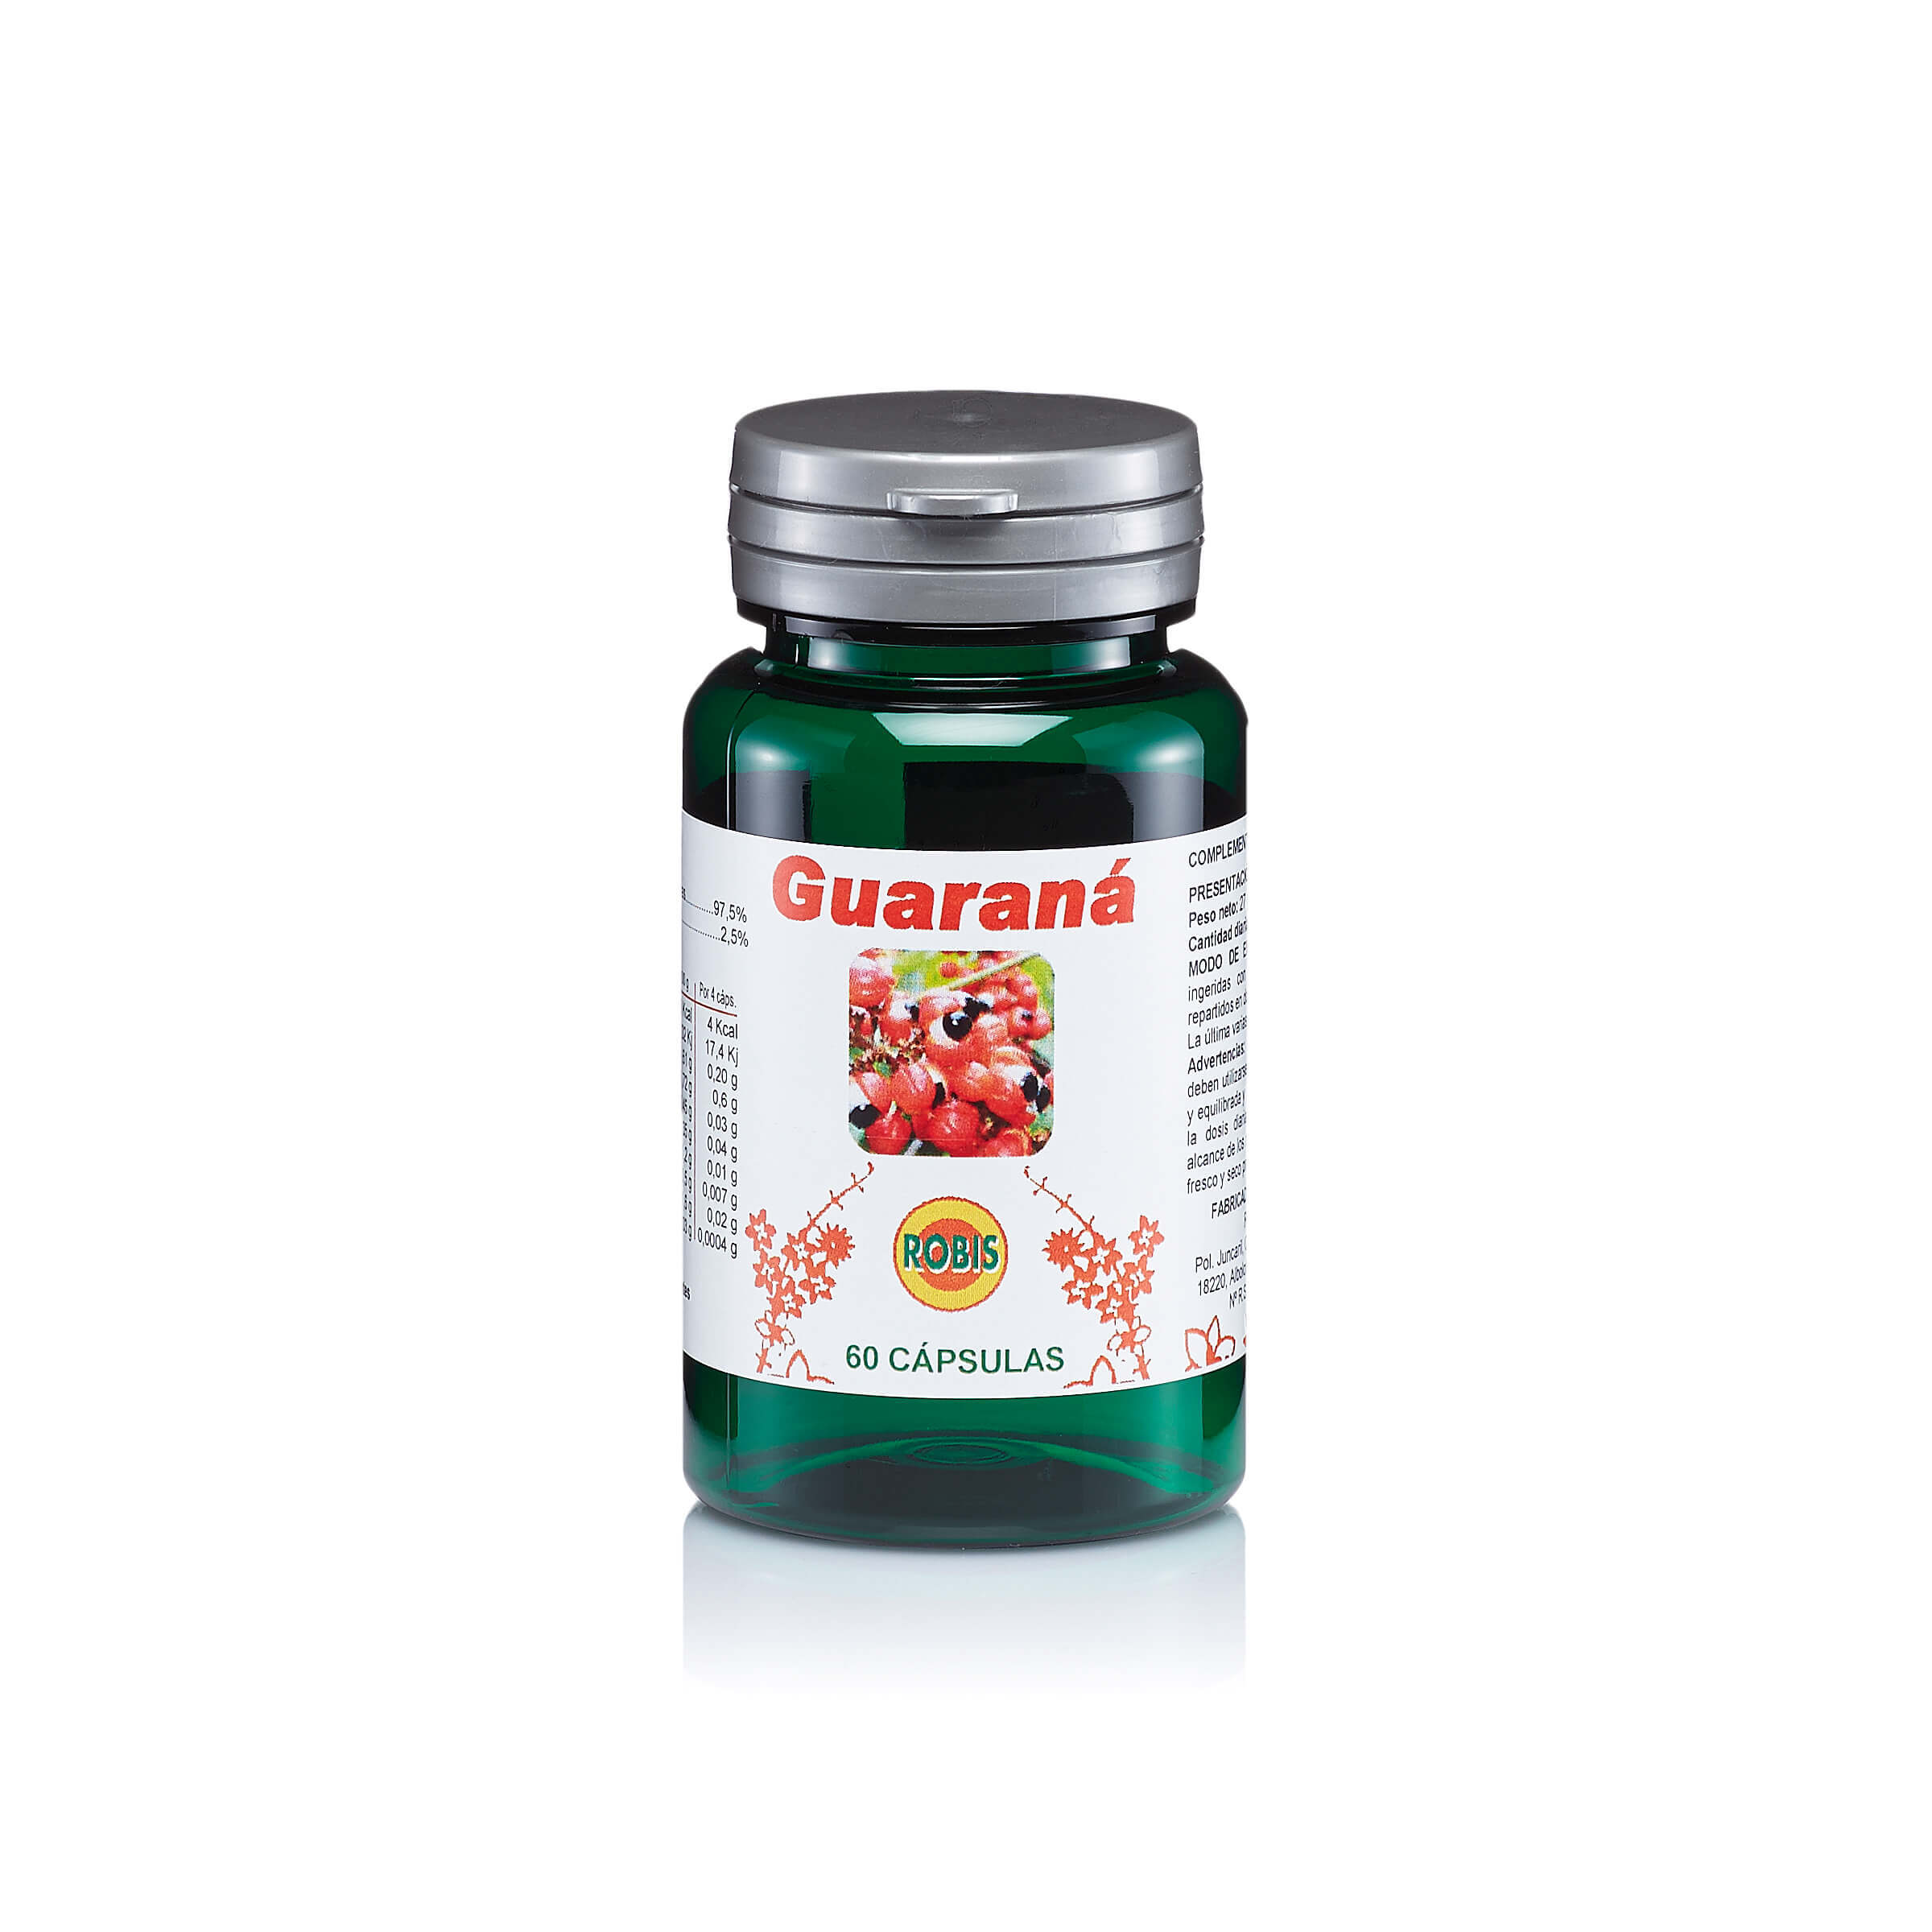 GUARANA 50CAPS 450MG ROBIS en Biovegalia